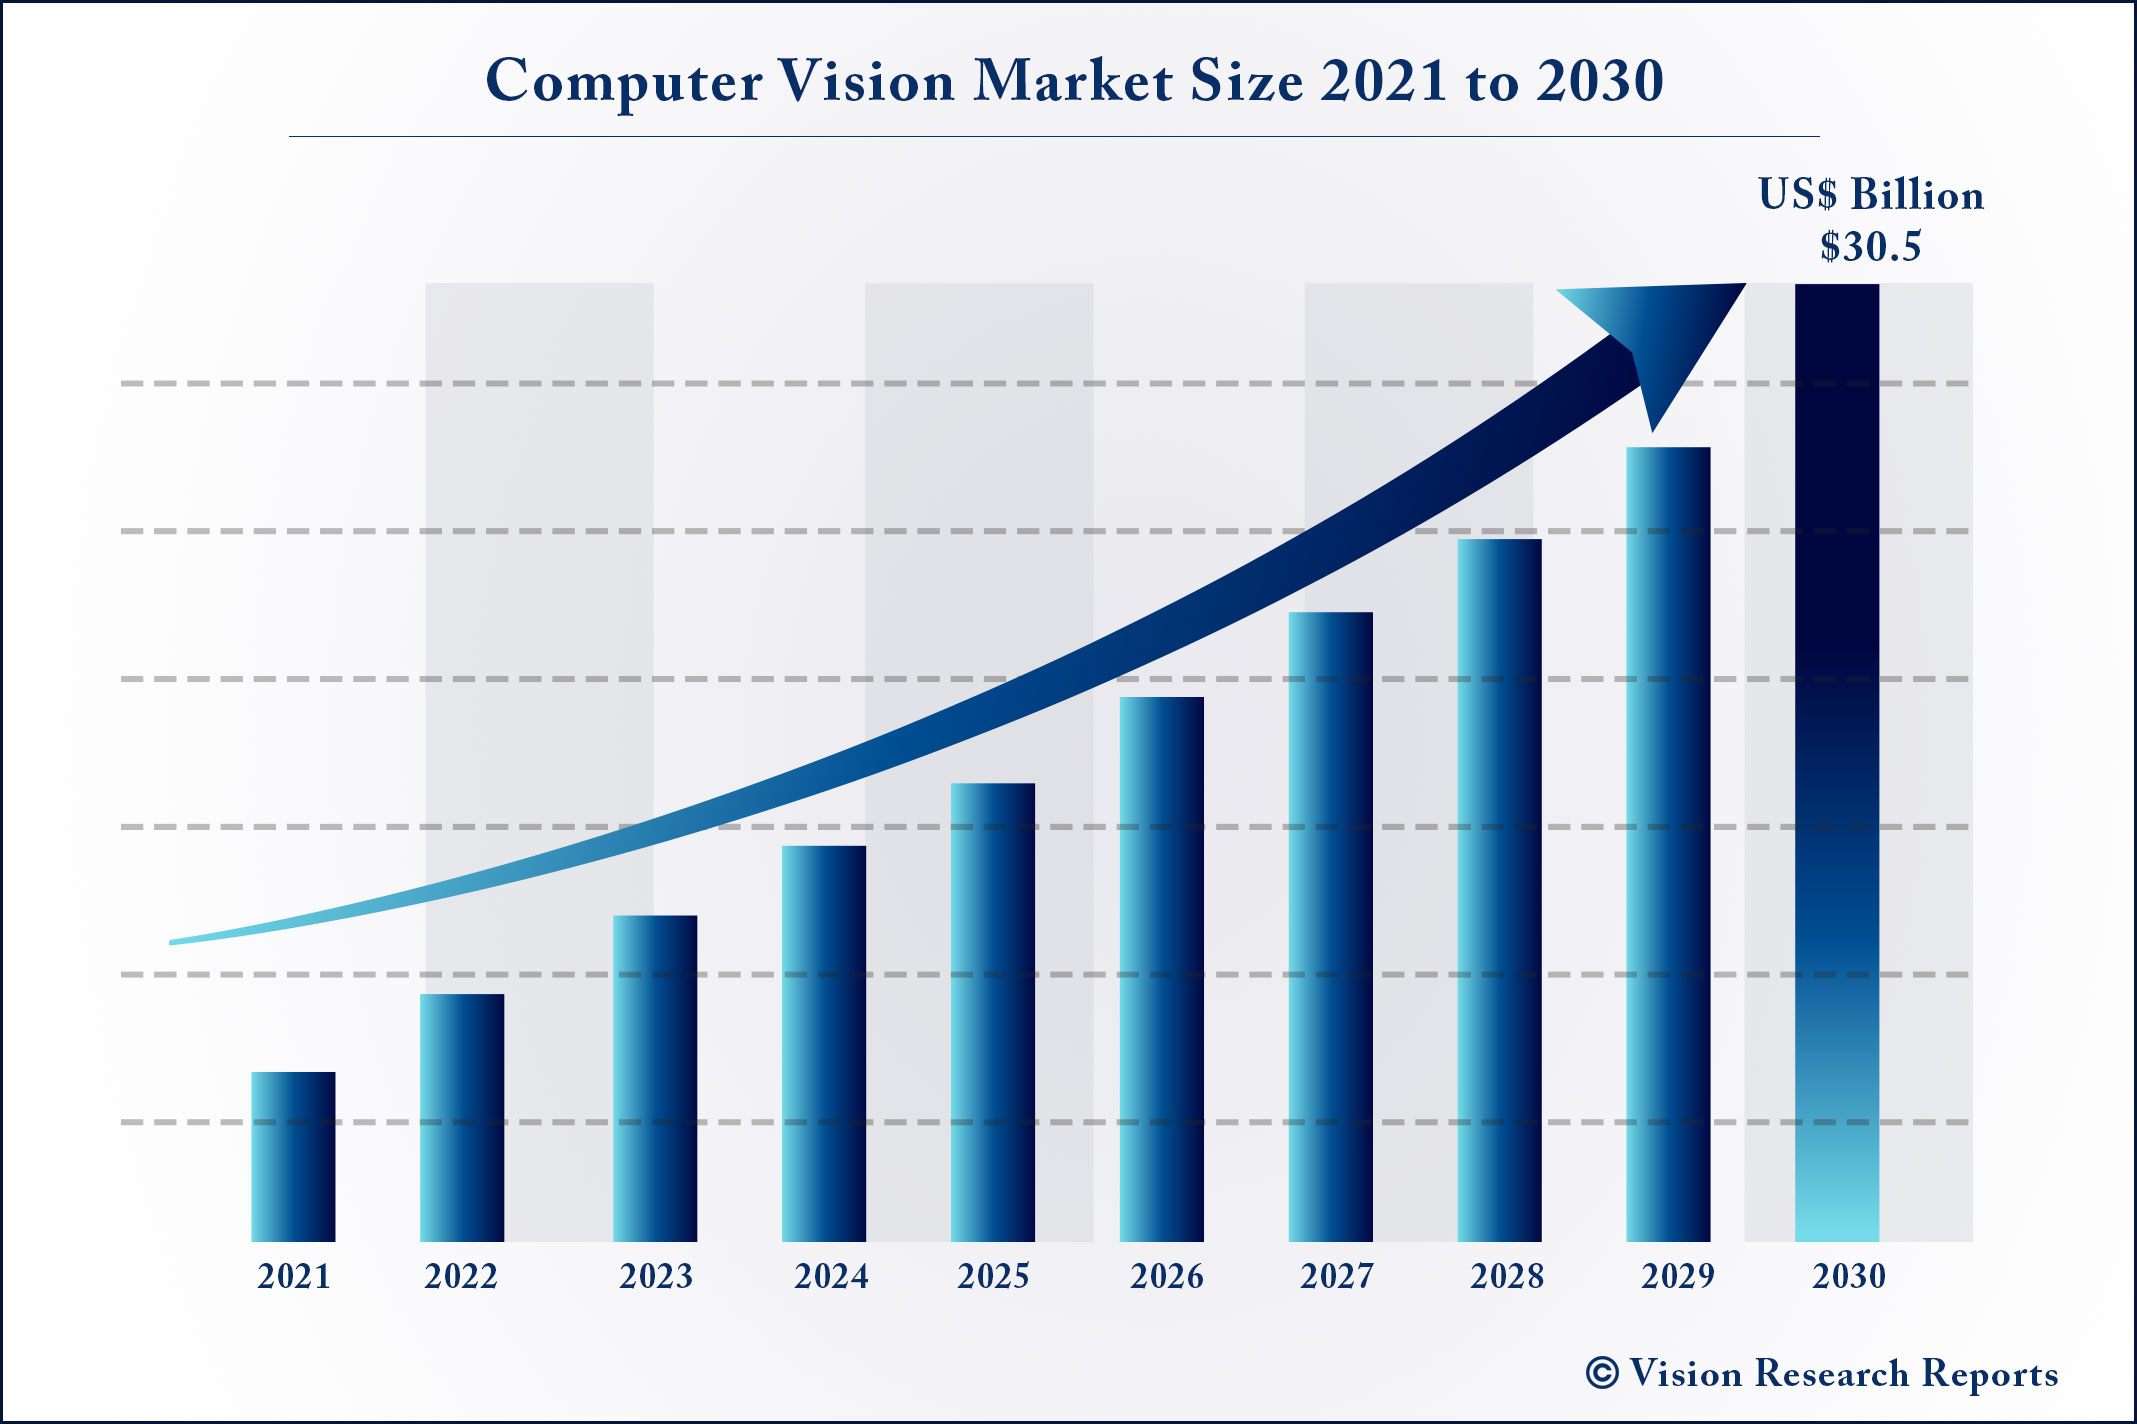 Computer Vision Market Size 2021 to 2030